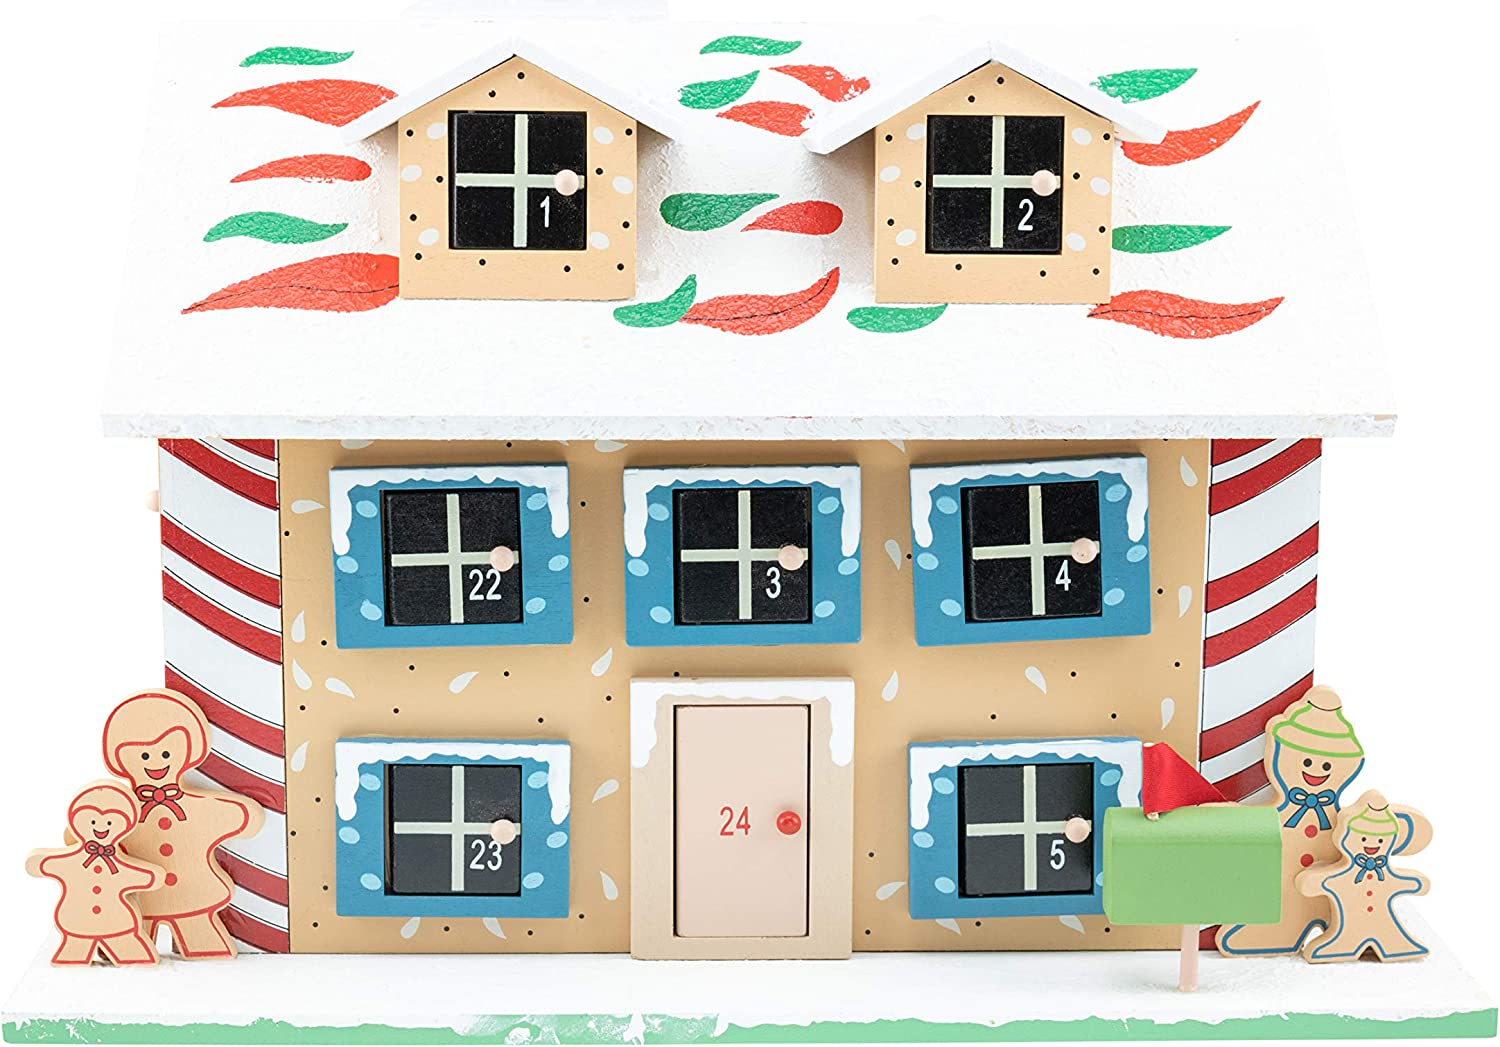 Clever Creations Wooden Christmas Advent Calendar, Countdown to Christmas, Festive Holiday Decoration, Gingerbread House